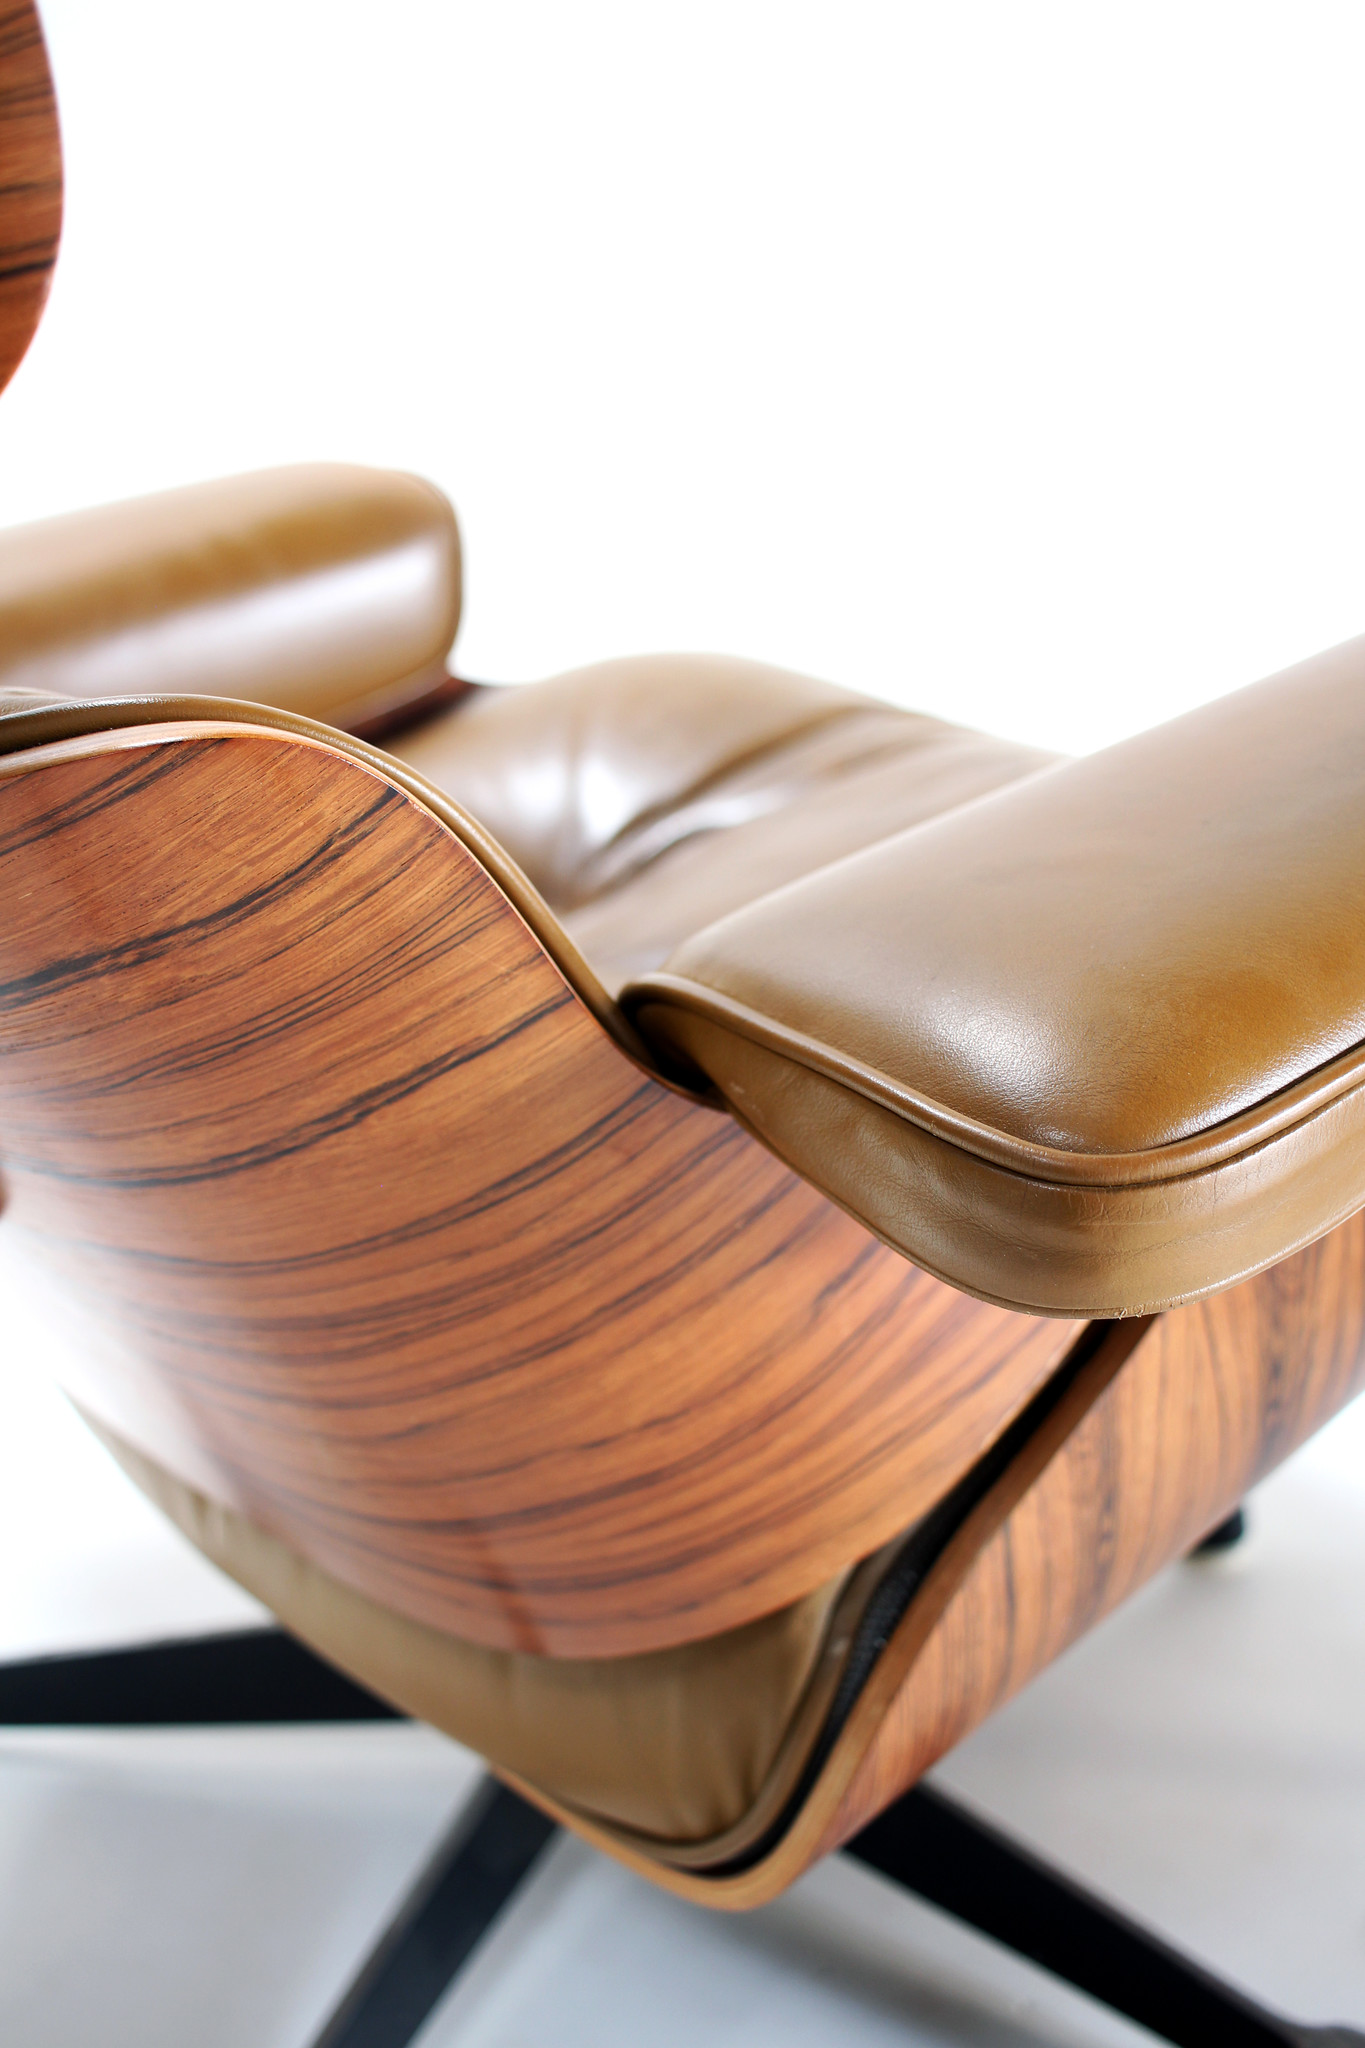 Vintage Eames Lounge chair